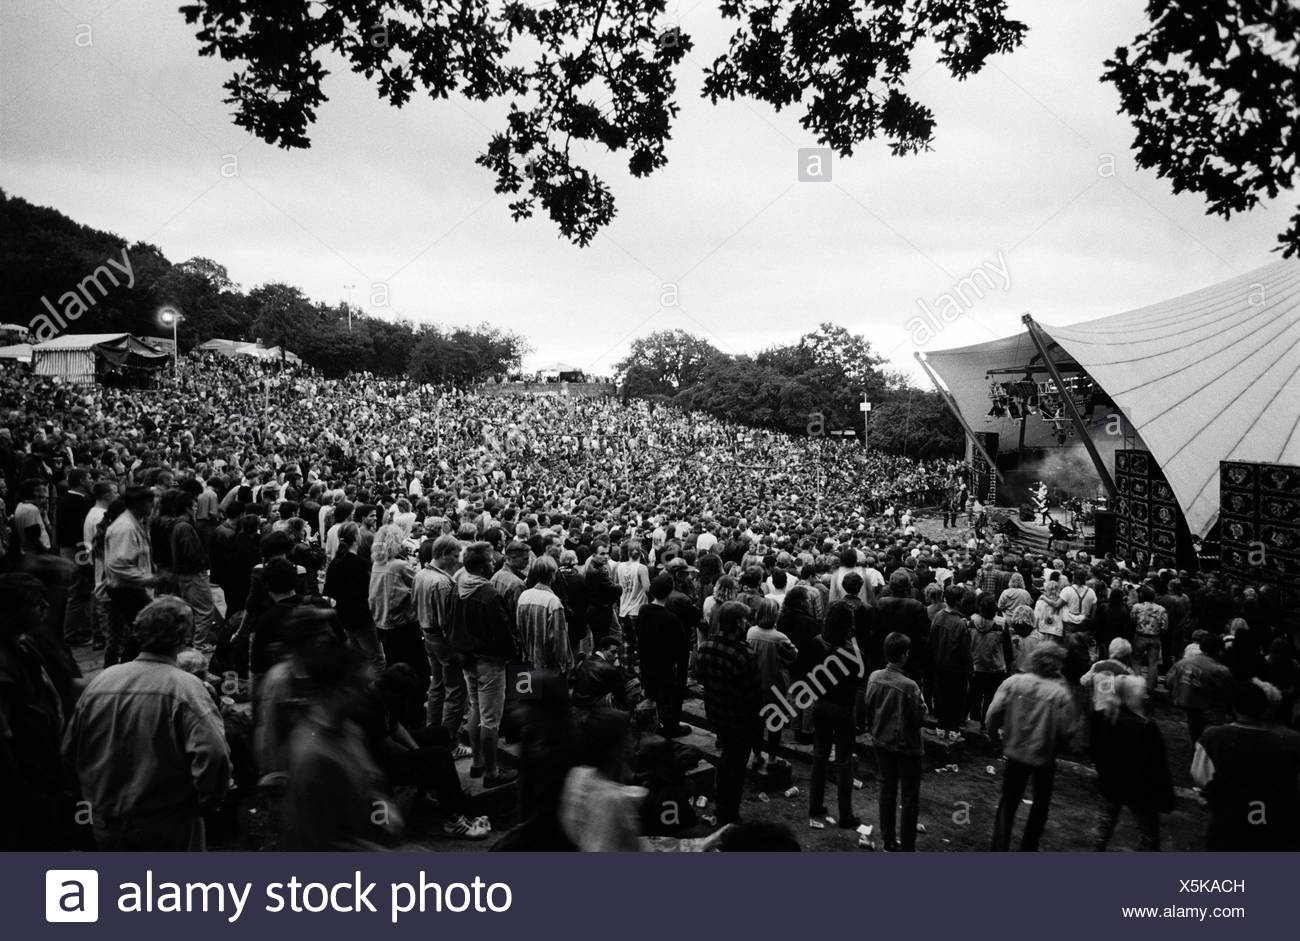 Concert of the rock group 'Simple Minds' on 01.09.1991 at the Loreley open-air stage, St. Goarshausen, Rhineland-Palatinate - Stock Image